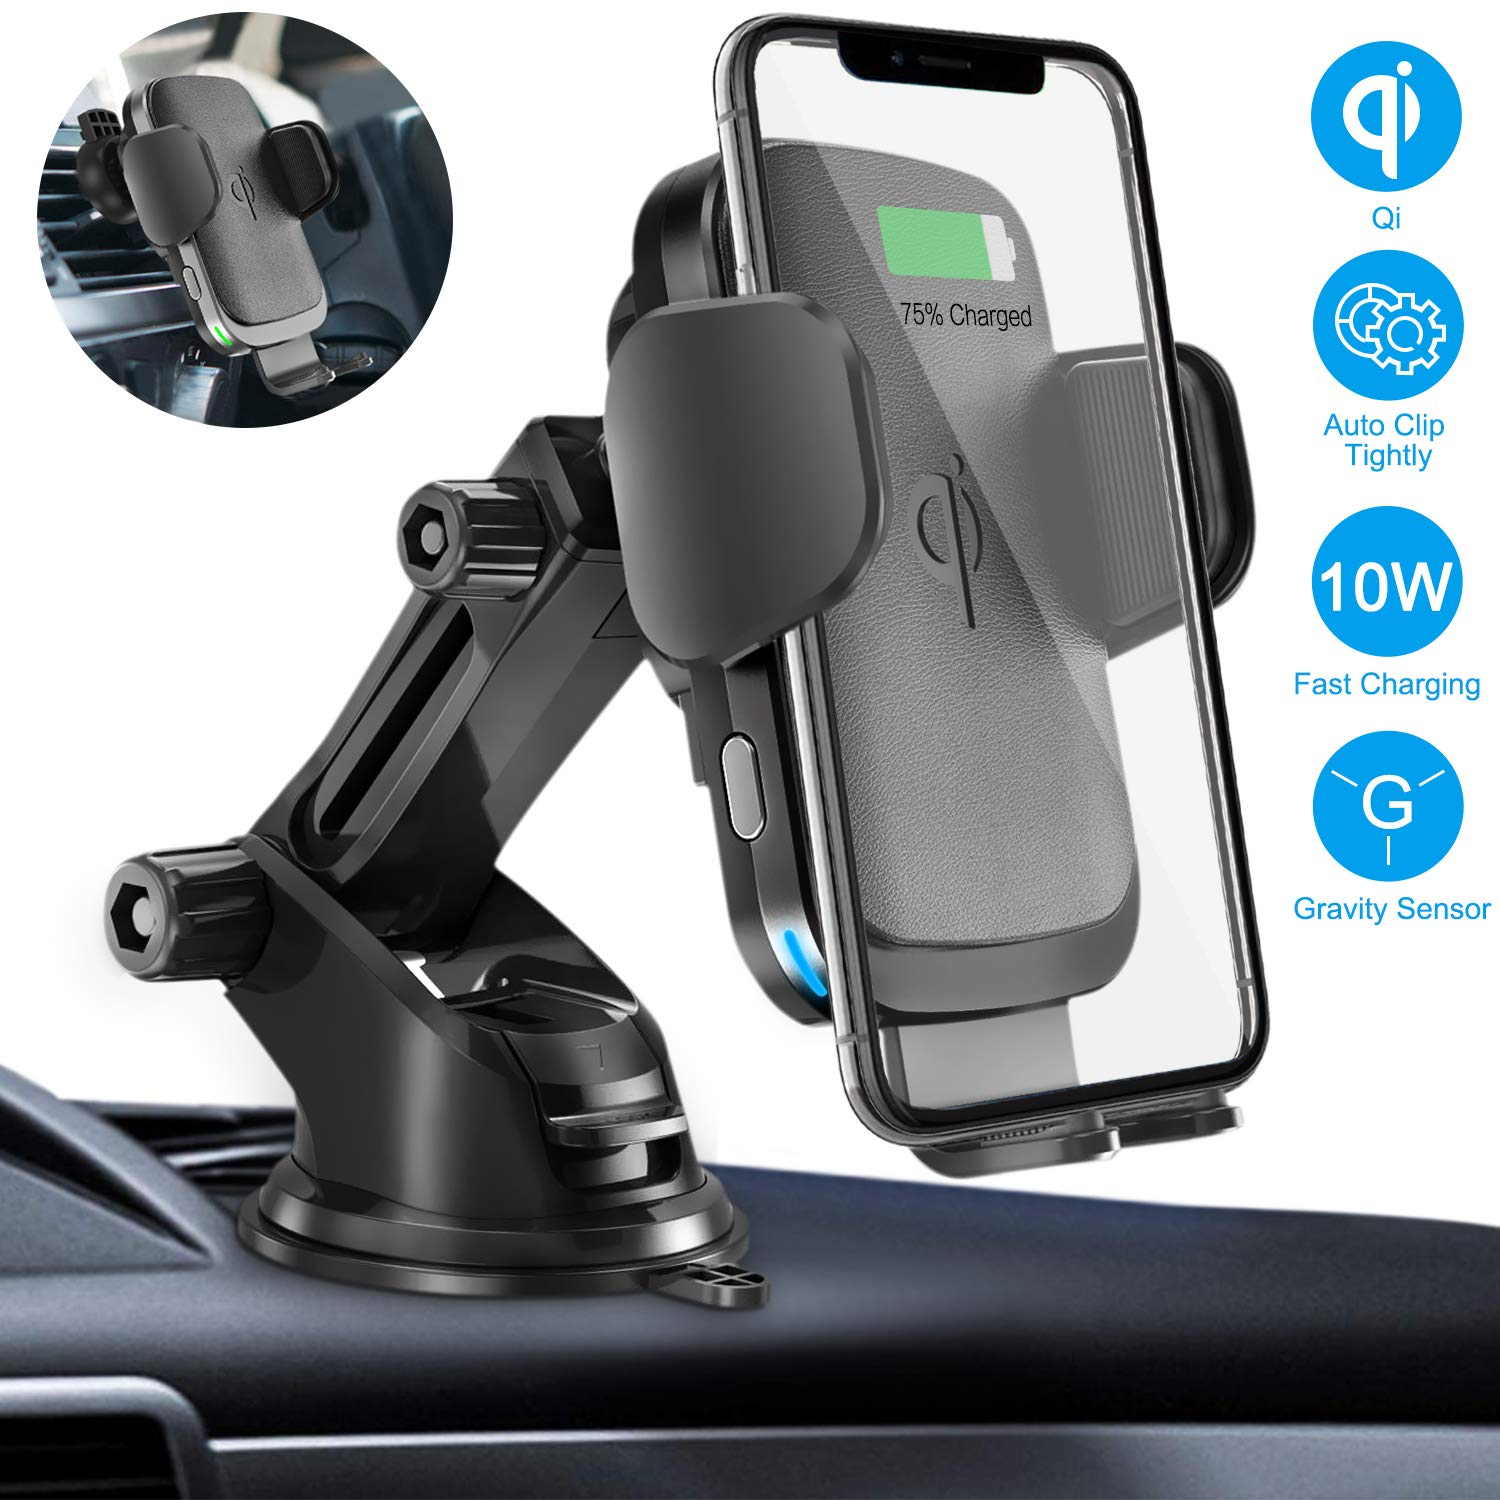 Wireless Car Charger Mount, Cshidworld Auto Clamping 10W/7.5W Qi Fast Charging Car Mount, Windshield Dashboard Air Vent Phone Holder Compatible with iPhone Xs Max XR 8 Plus, Samsung S10 S9 S8, LG V30 by Cshidworld